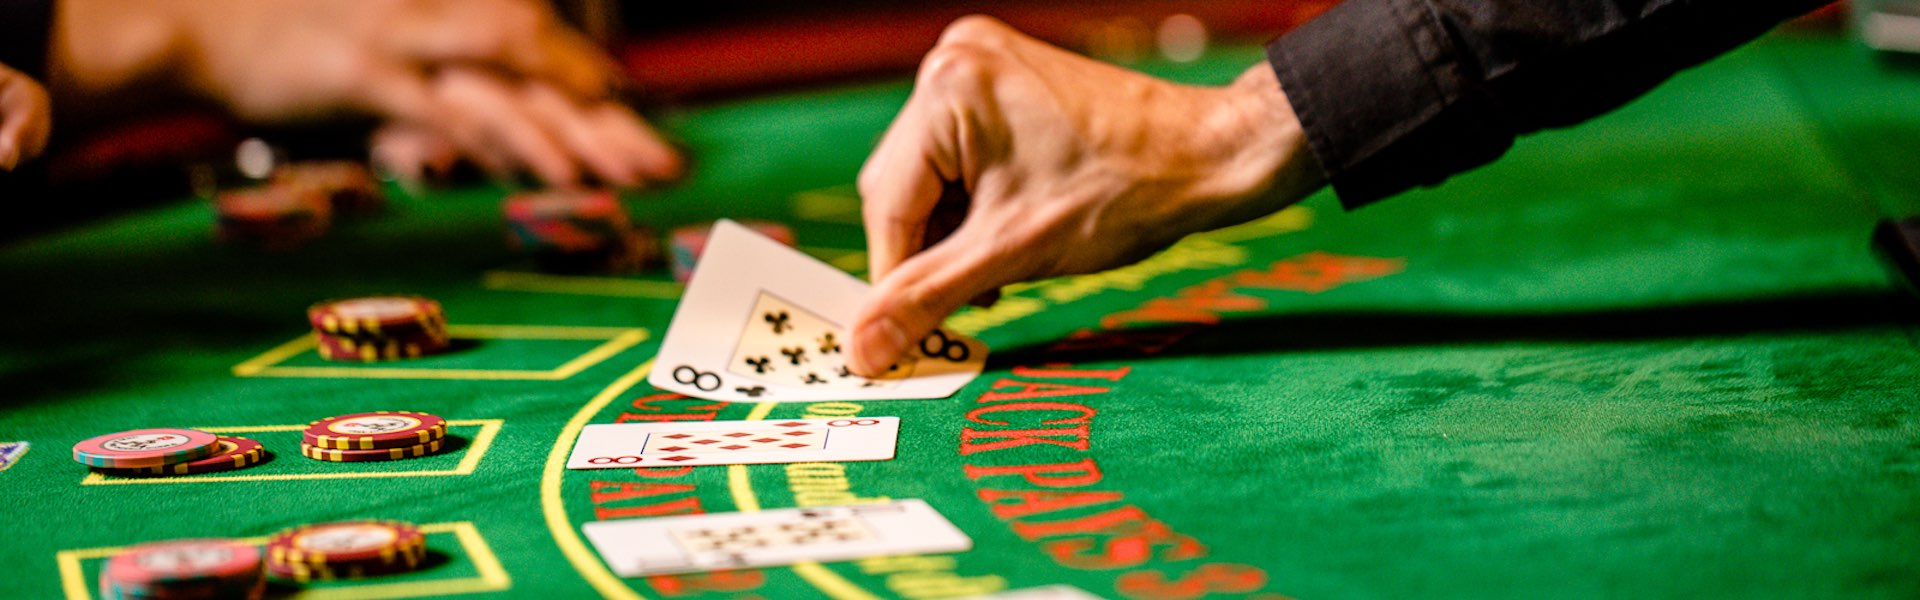 Blackjack | Palace Casino Isle of Man